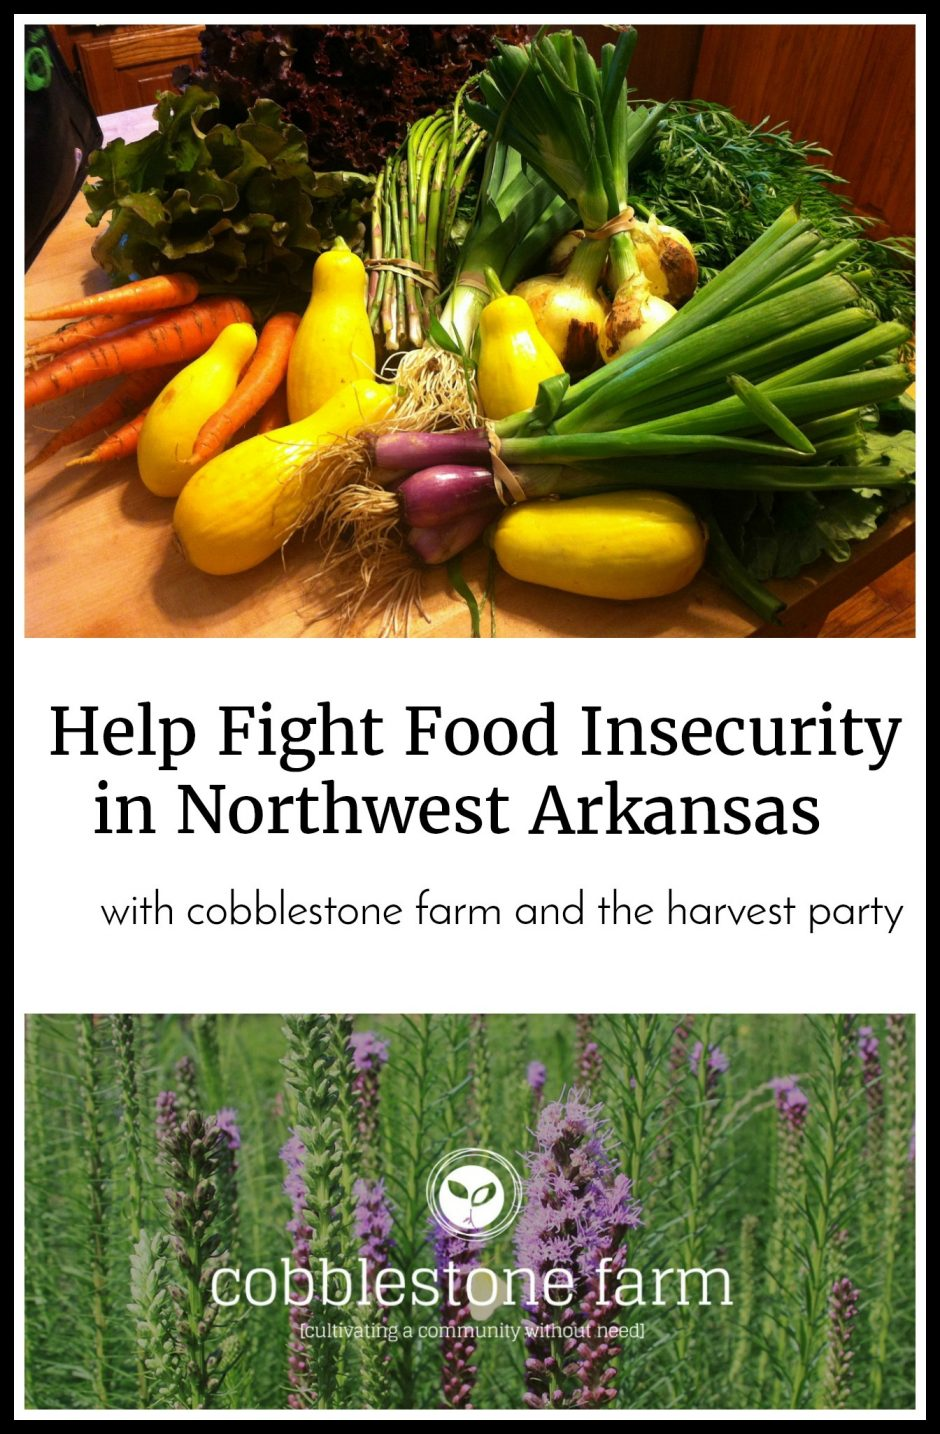 Learn how Cobblestone Farm helps with food insecurity in Northwest Arkansas.